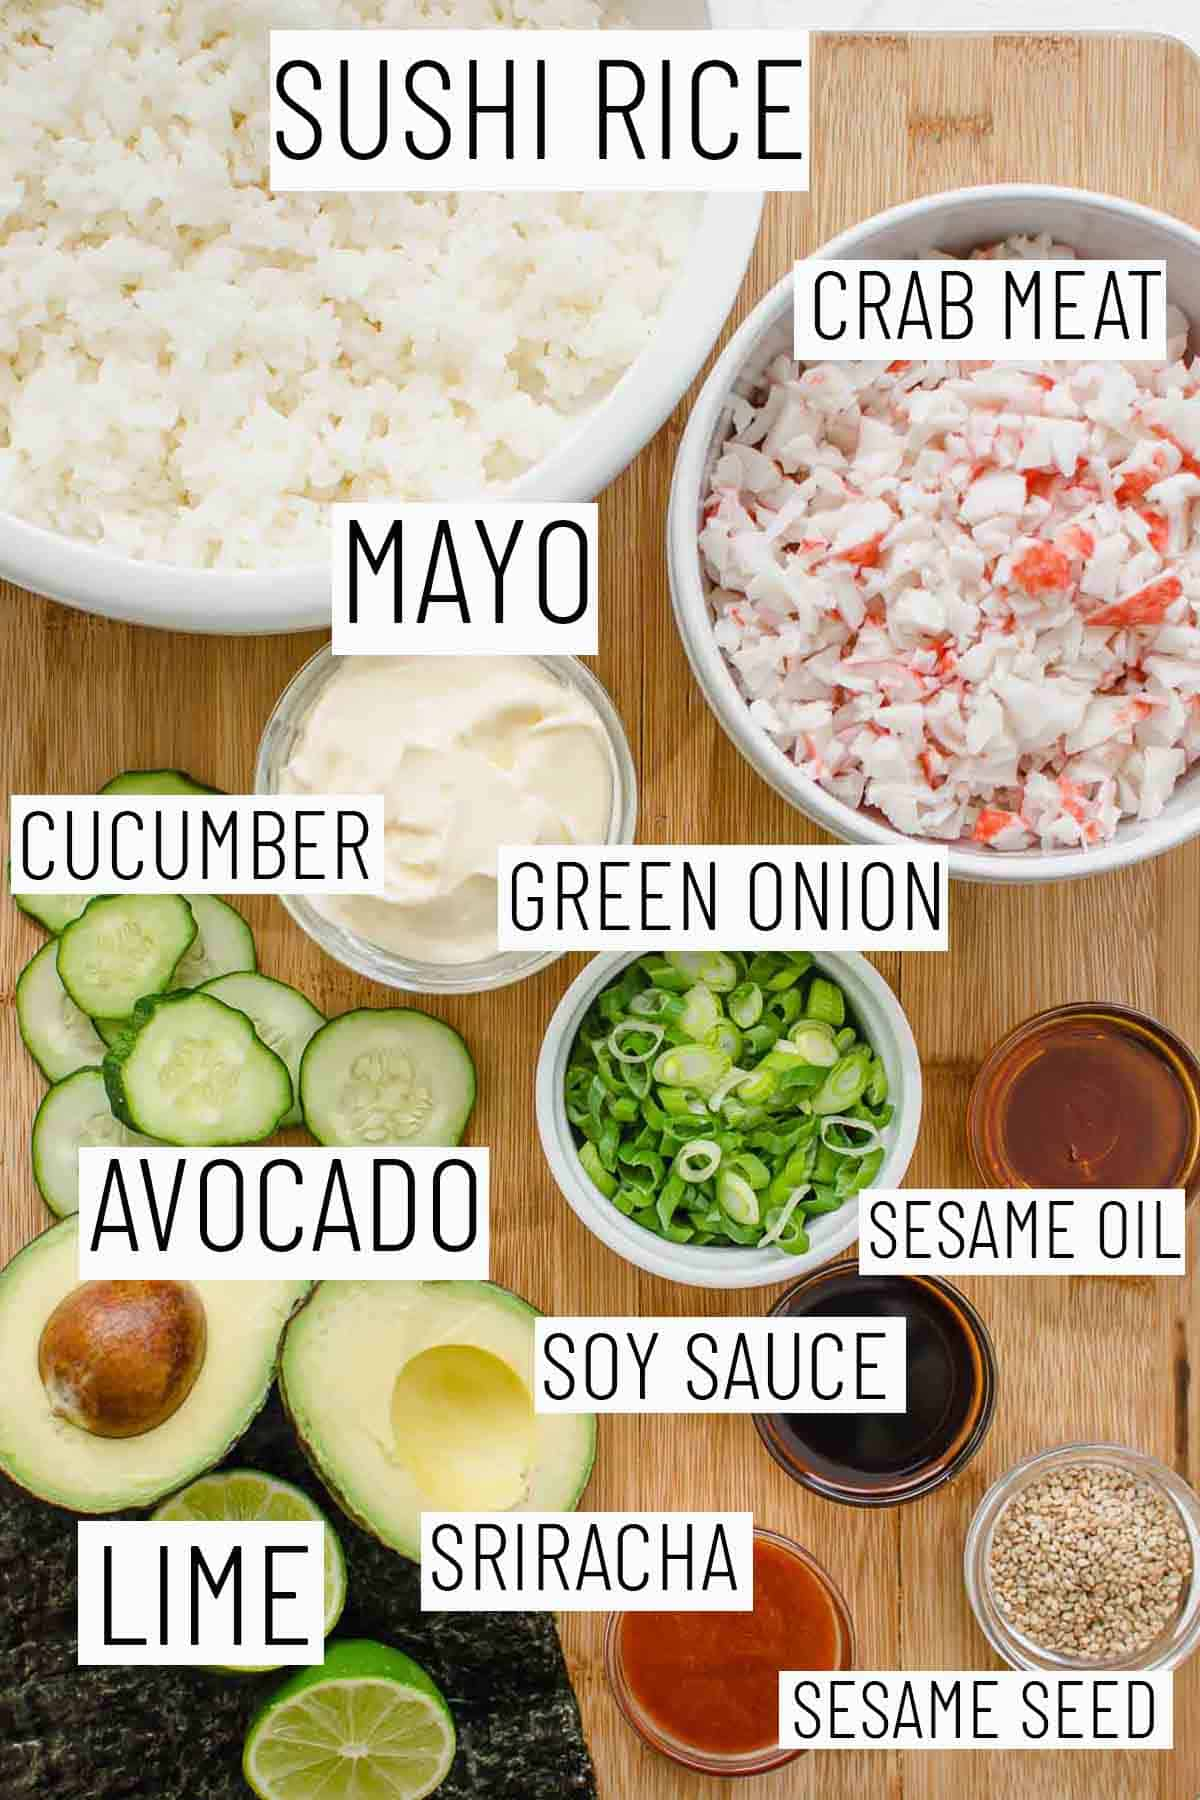 Flat lay image of portioned recipe ingredients.